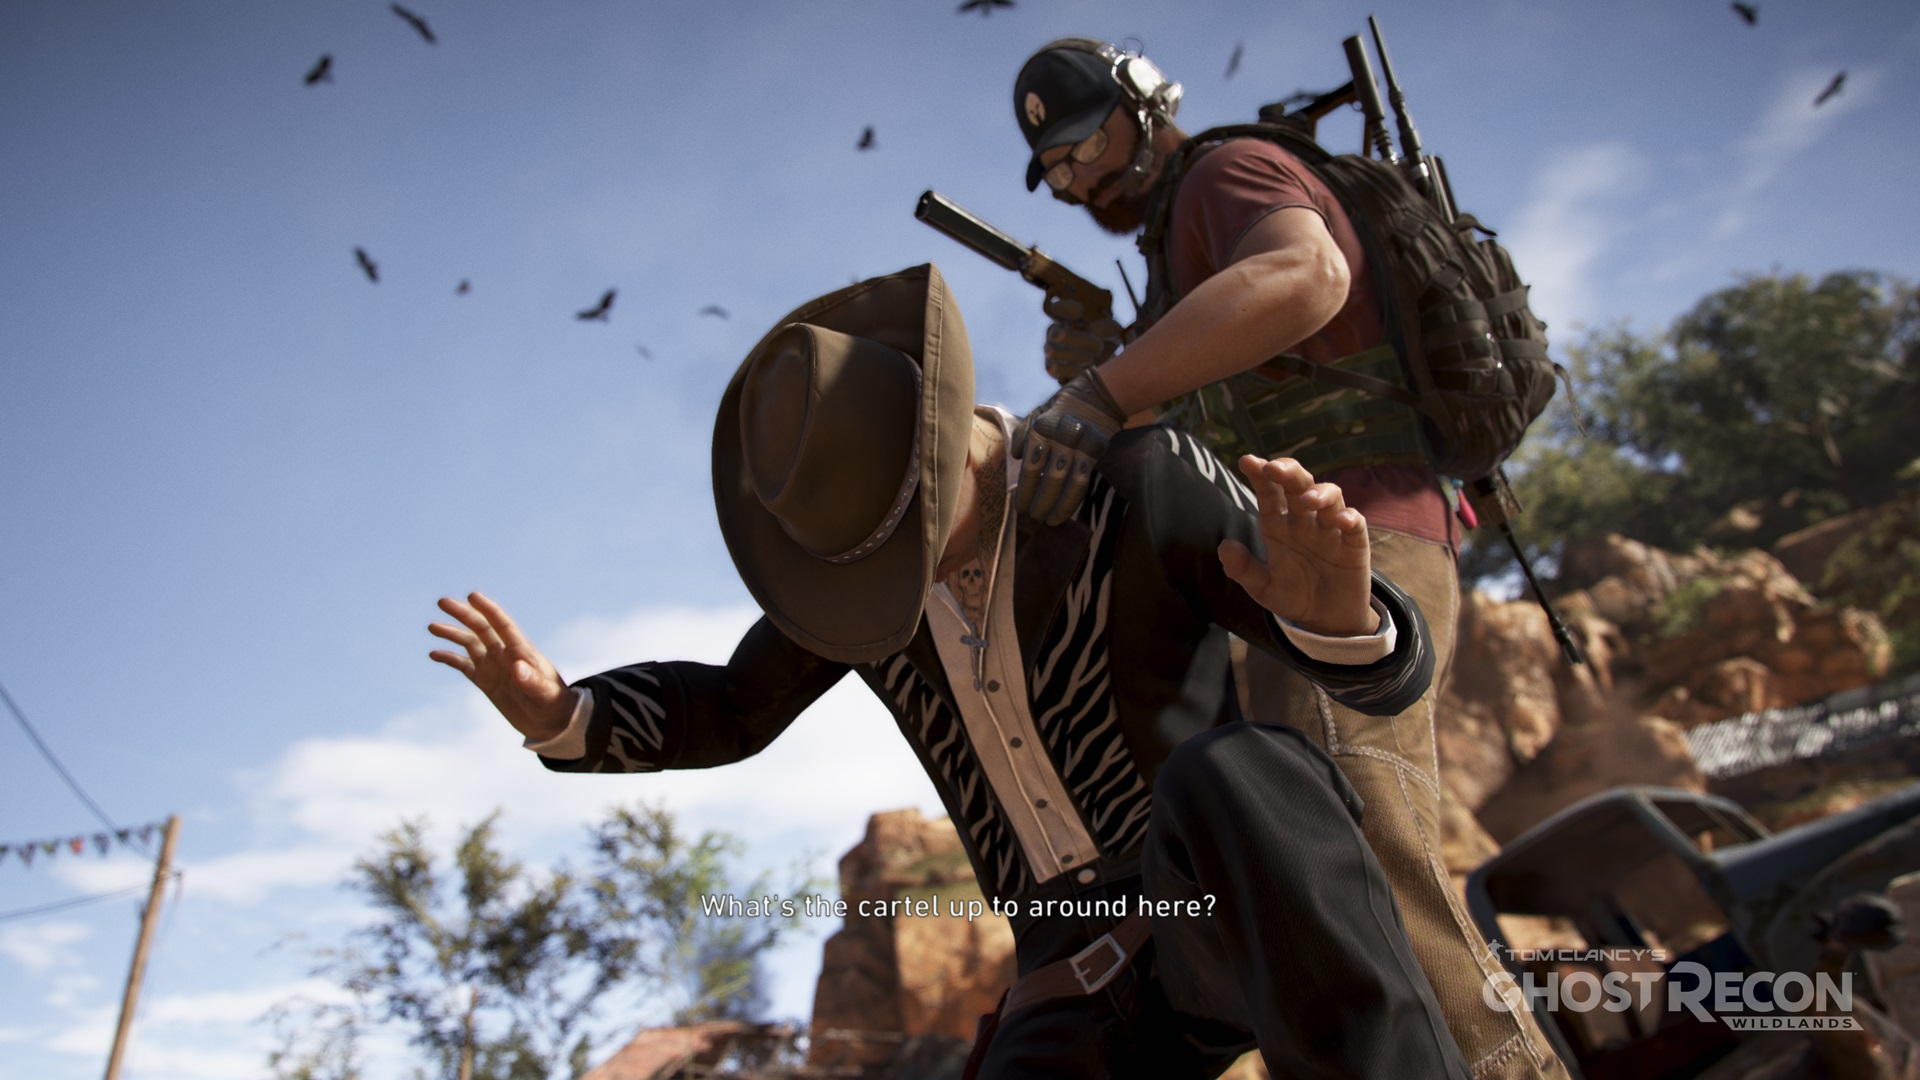 Ghost Recon Wildlands' Opt-In Storytelling Means the Real Fun Is